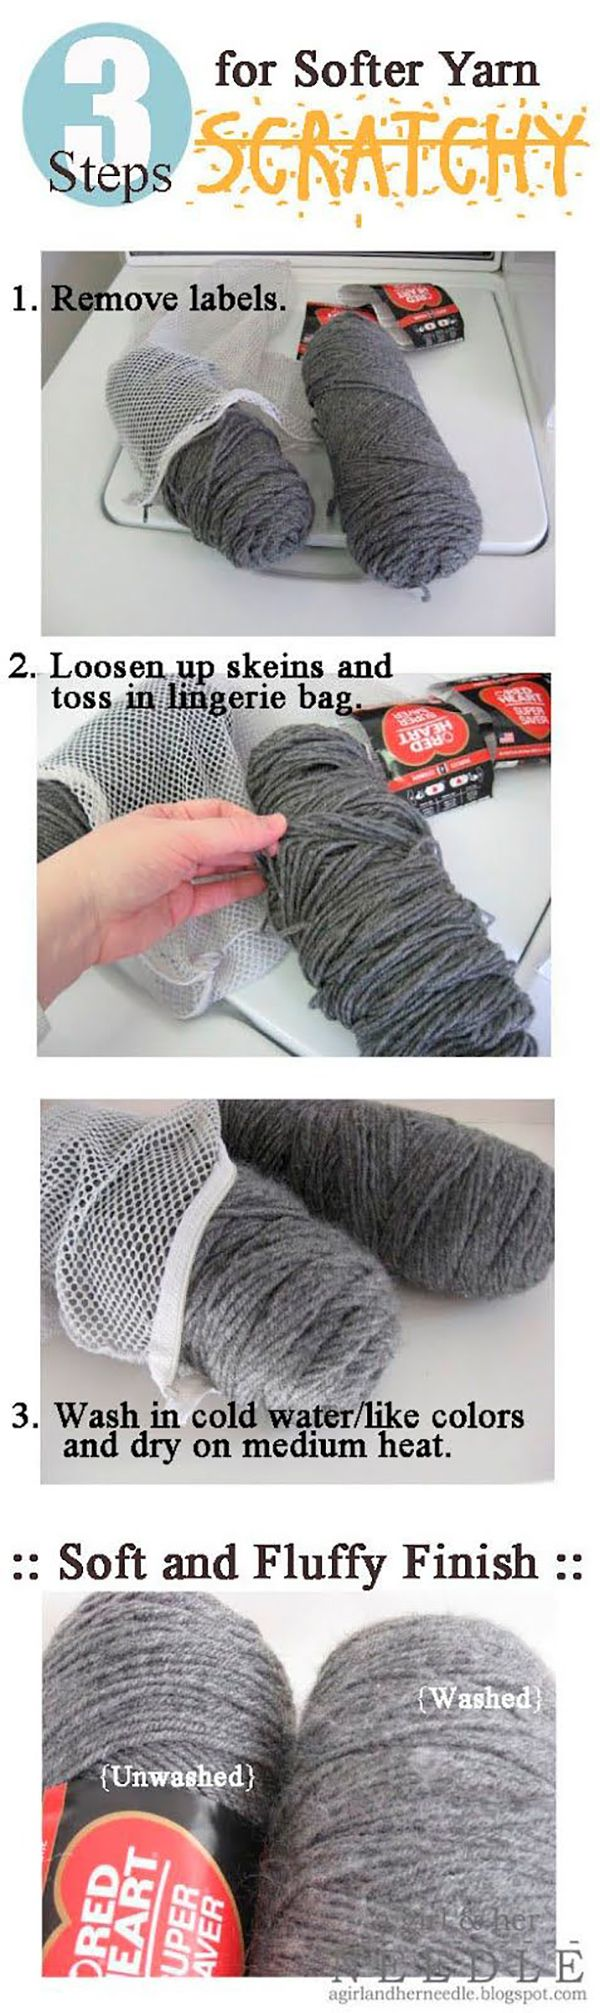 How To Soften Your Yarn! 20 Inasnely Clever Yarn Hacks That Will Make Your Next Project Easier!